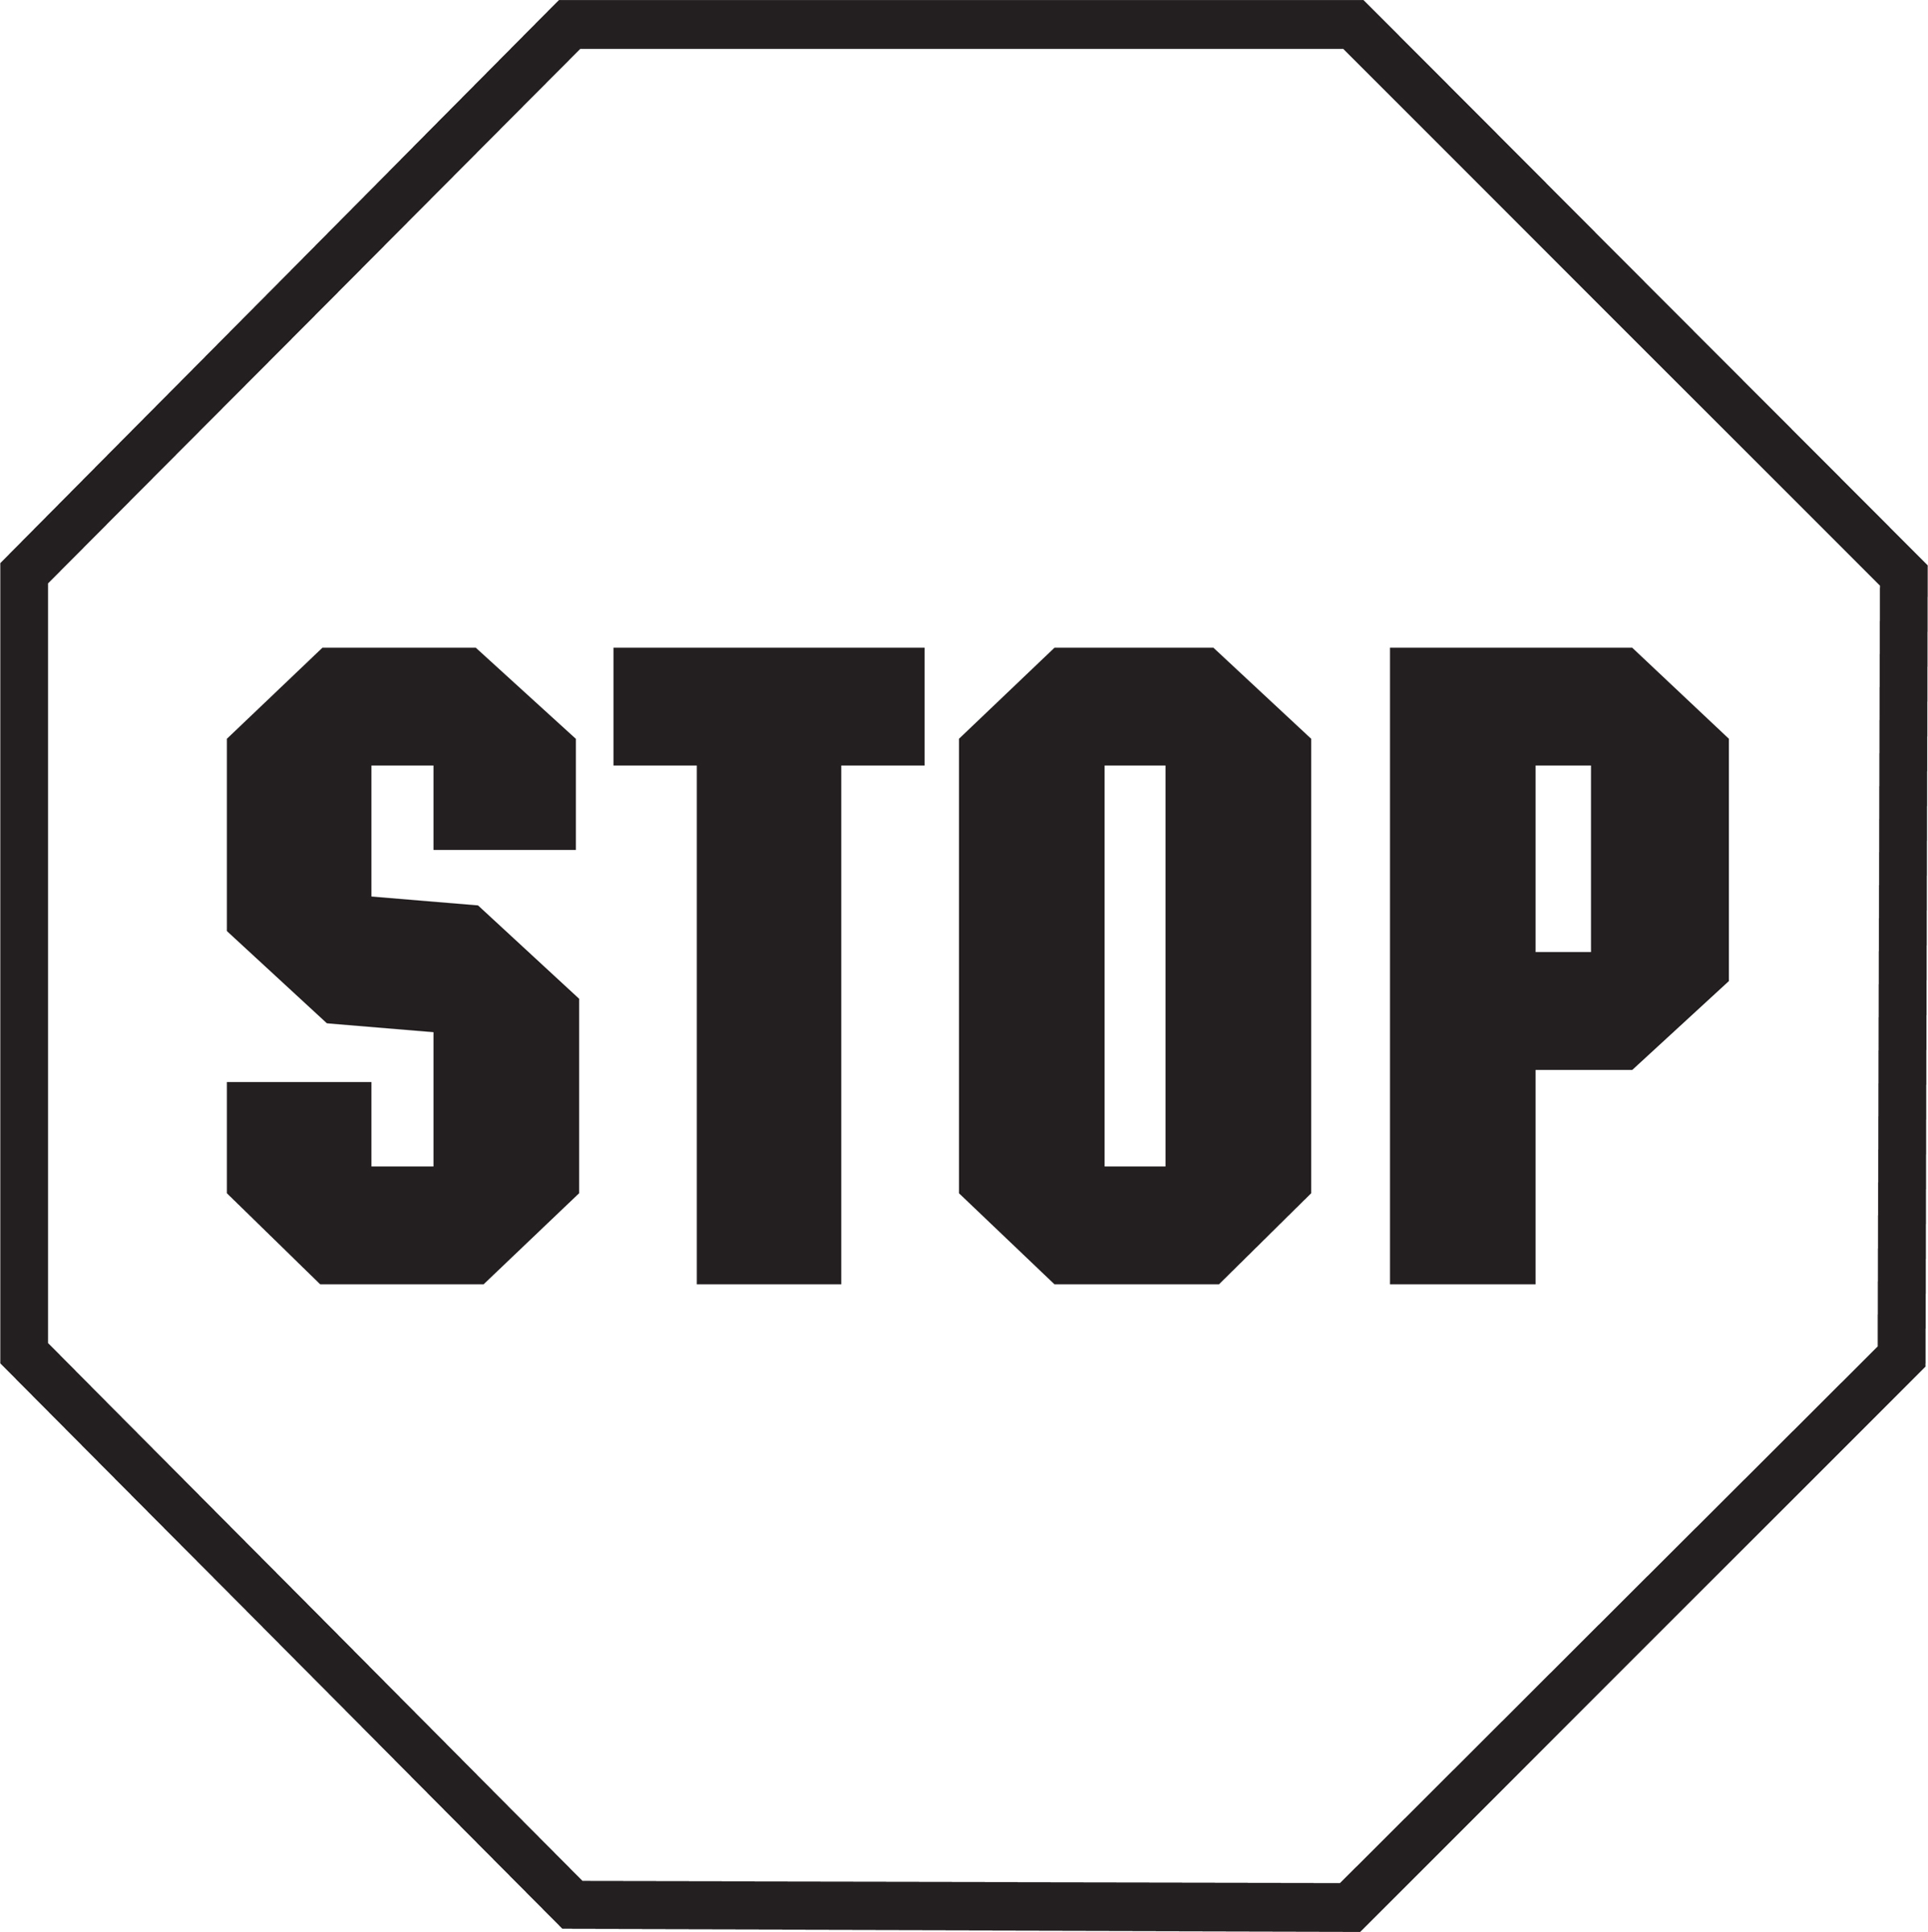 Stop sign clipart 2